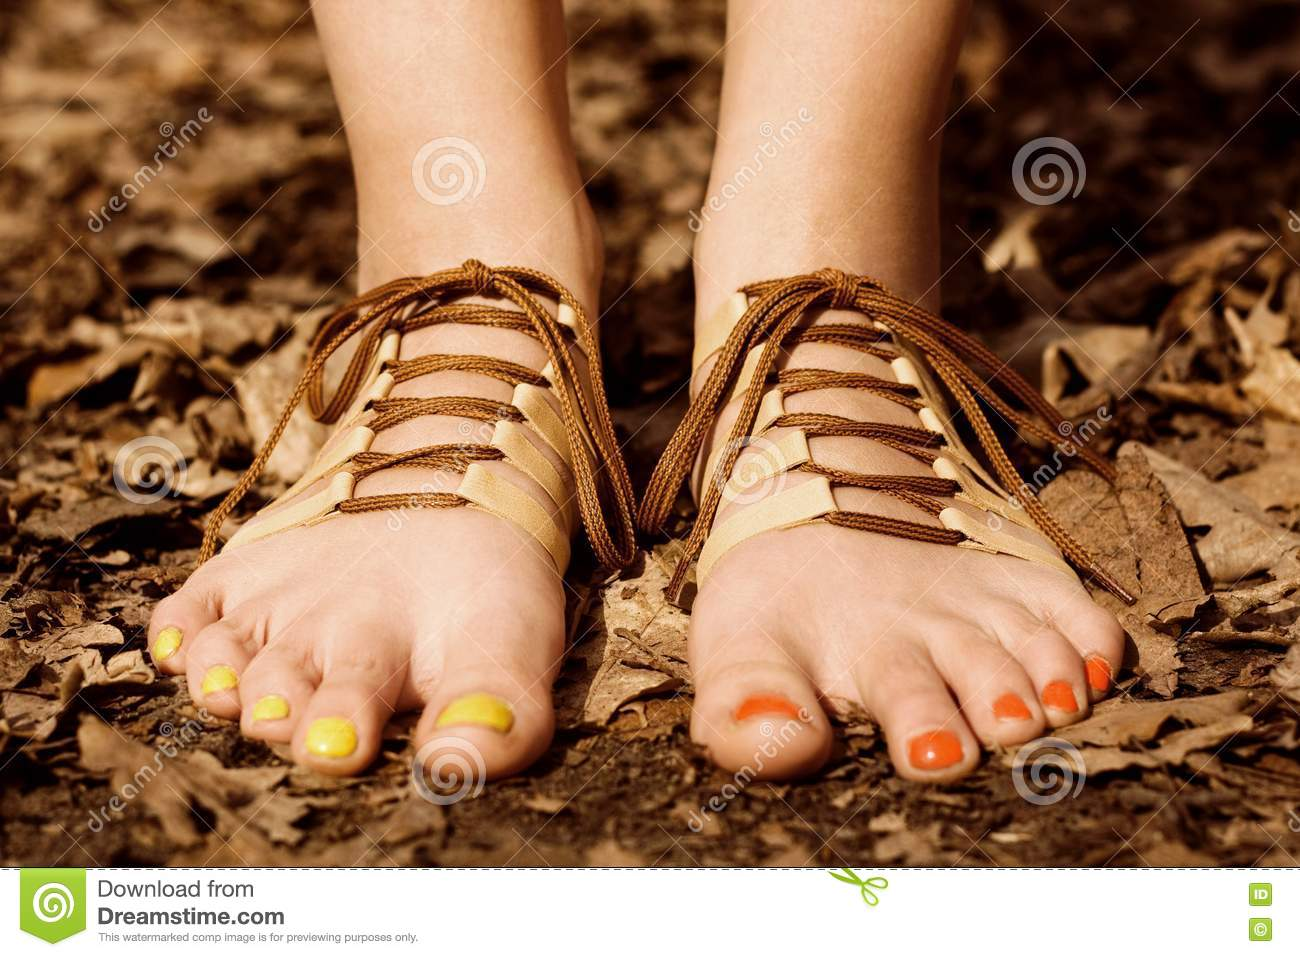 barefooted-tender-woman-s-feet-shoes-concept-14163973.jpg